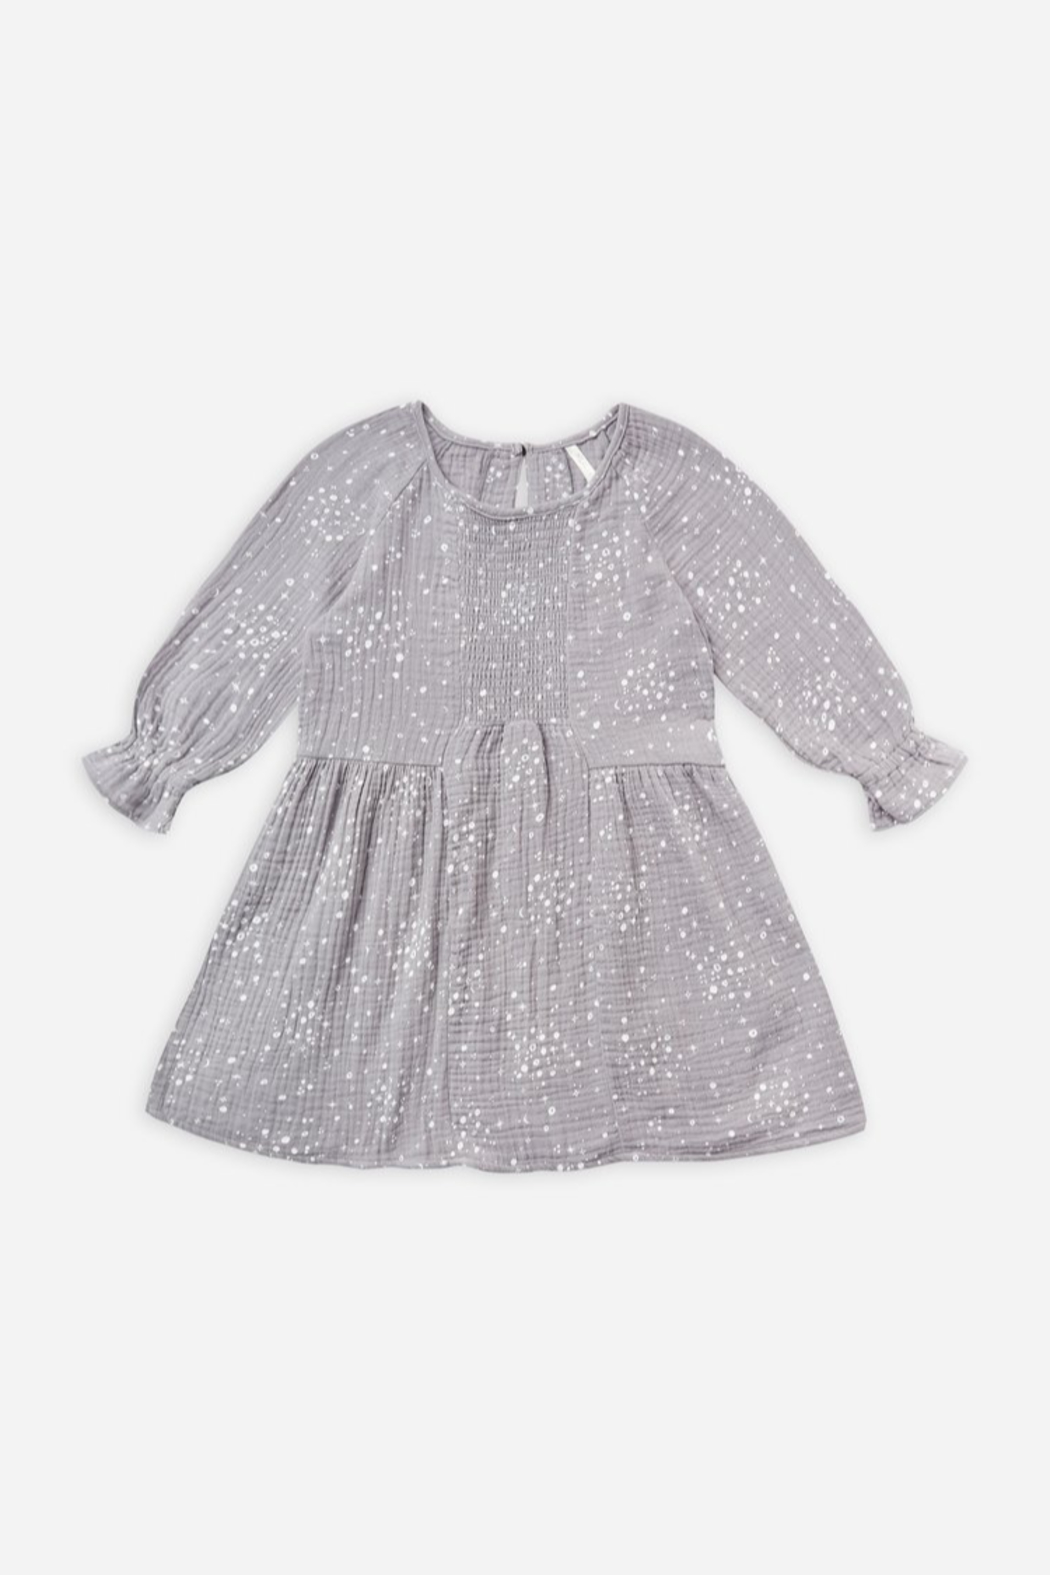 Rylee & Cru Moondust Sadie Dress - Main Image